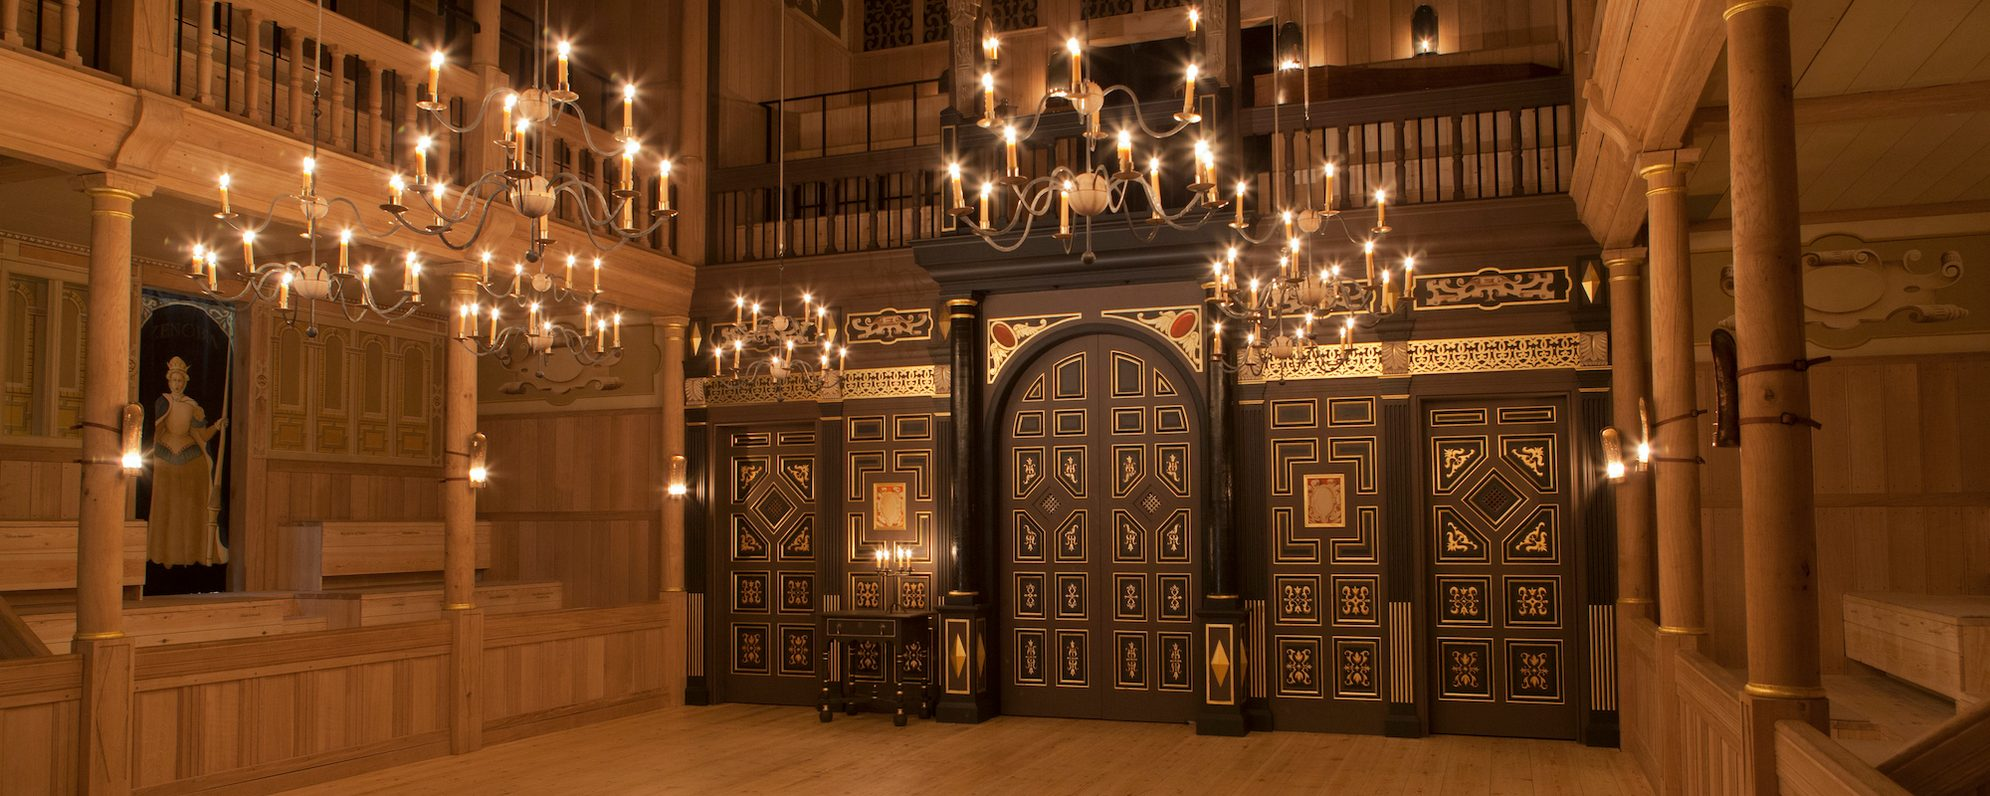 An indoor wooden playhouse lit by candles